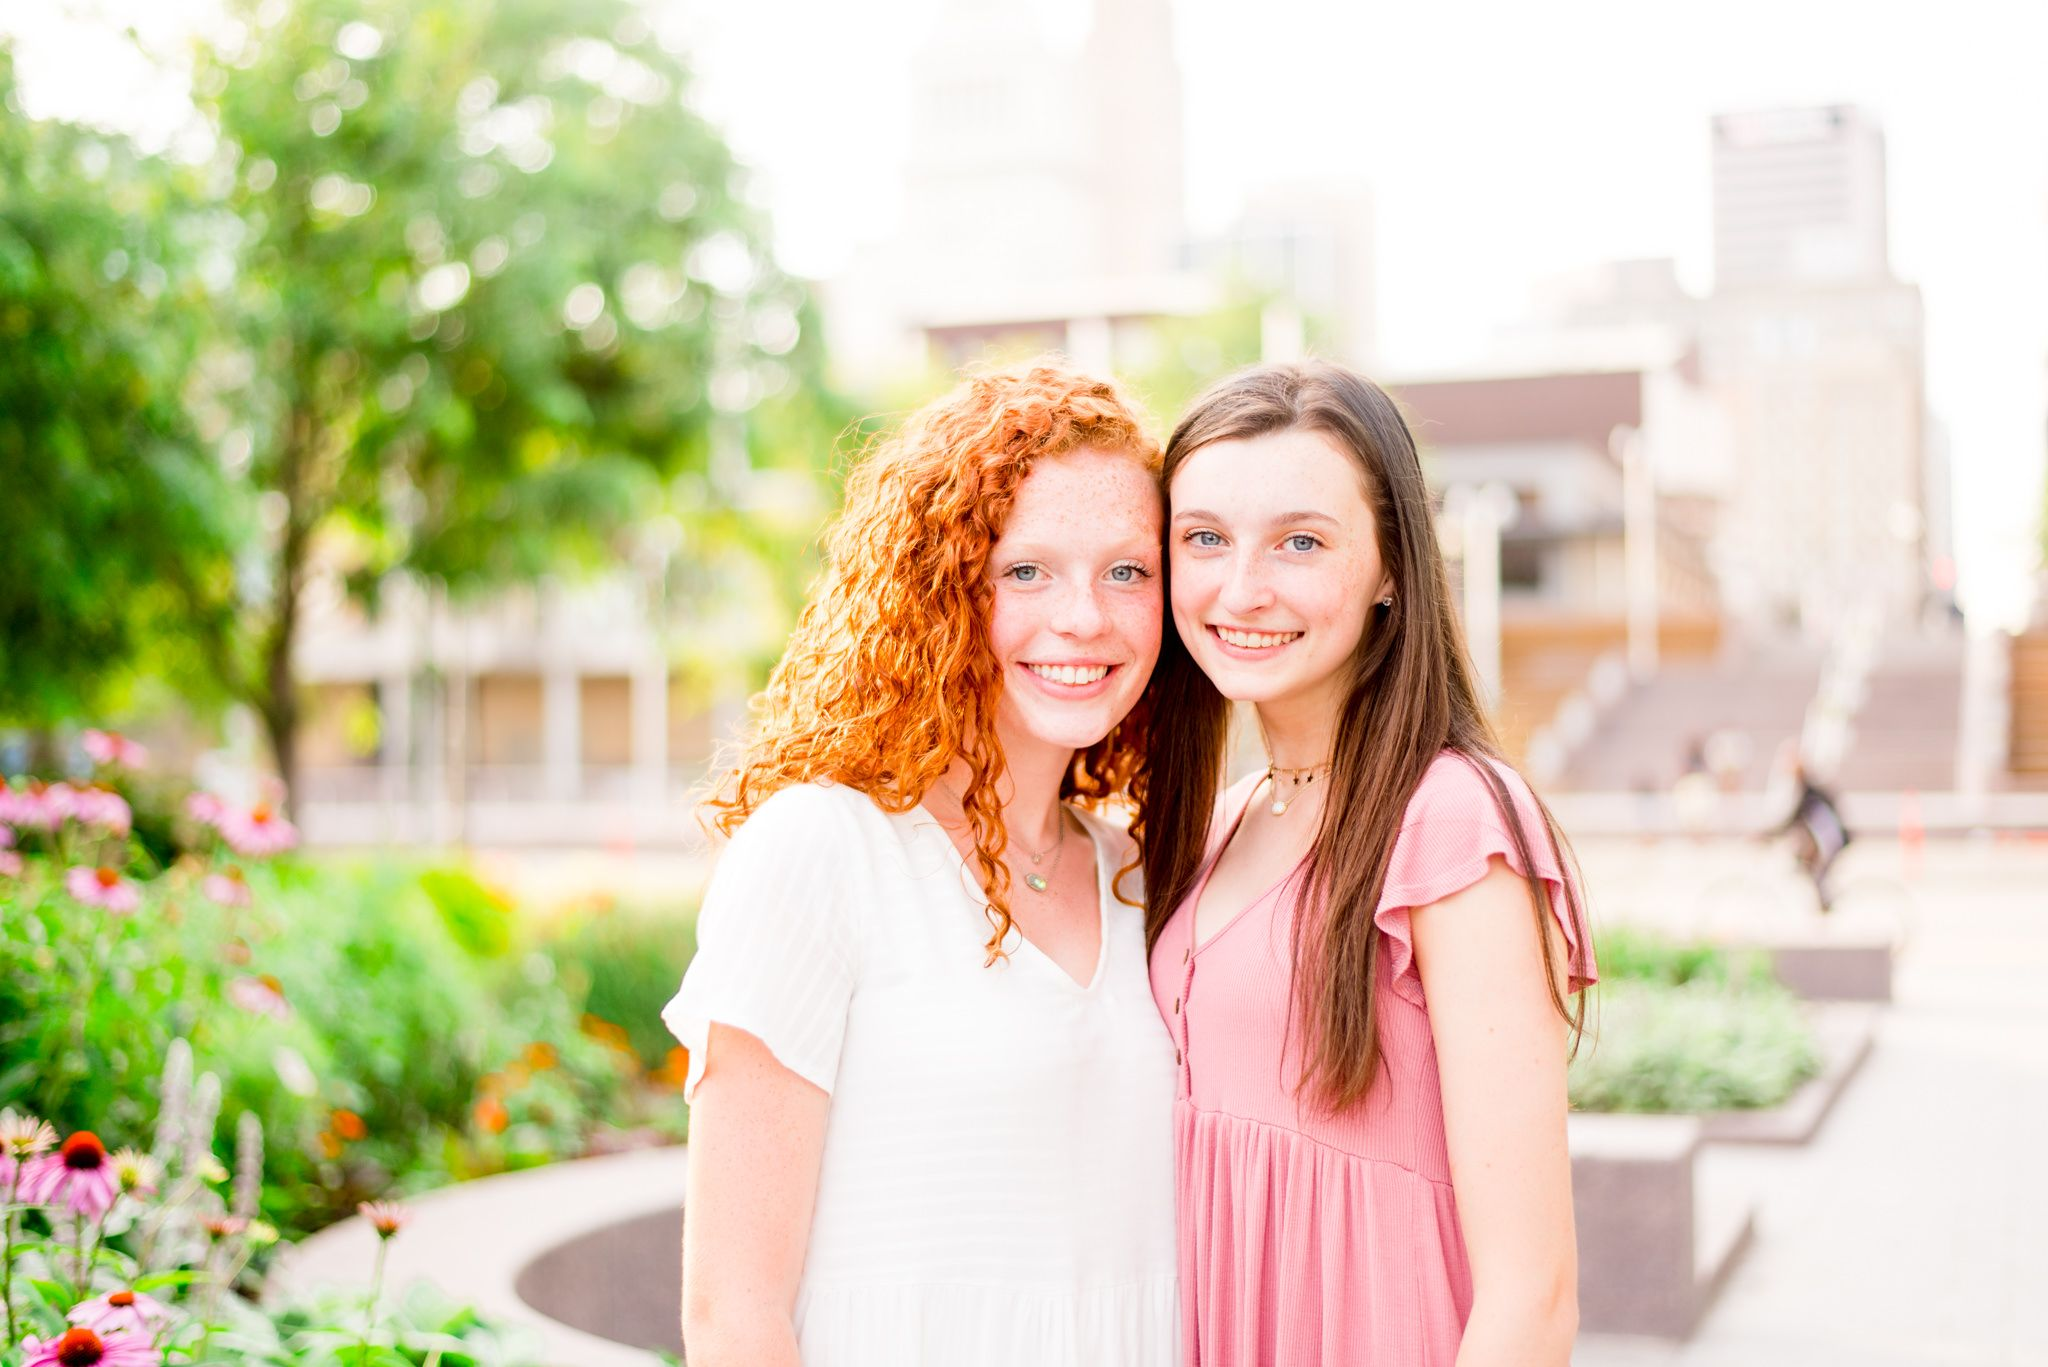 two teenage girls with red hair and brown hair stand together smiling in Smale Park at sunset